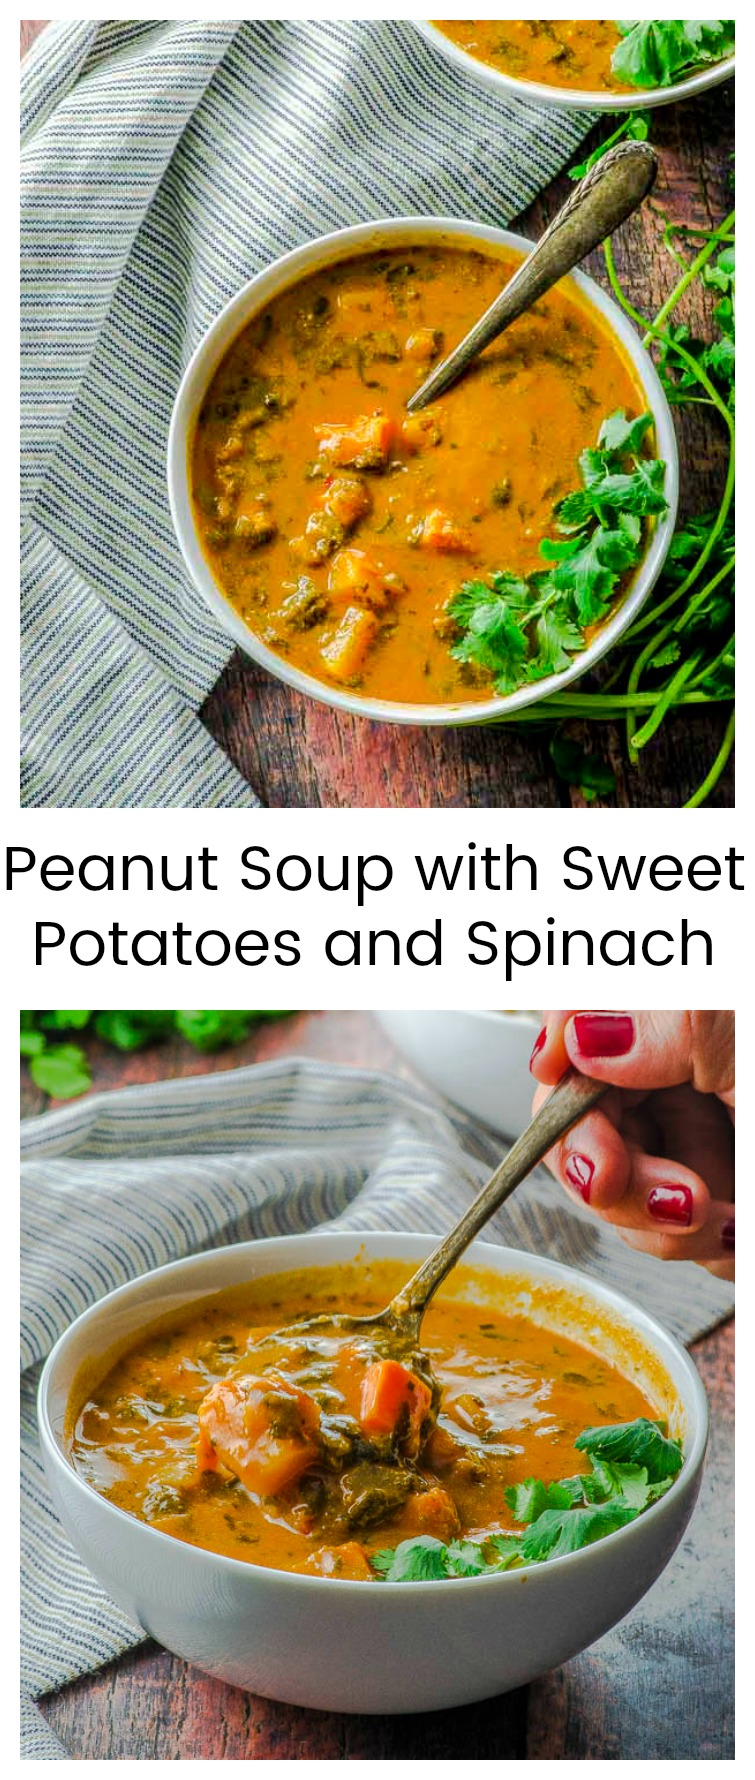 When you're looking for a creamy, nutritious, and deliciously exotic soup, our Peanut Soup with sweet potatoes and spinach will impress your guests and satisfy your hunger for hours. A super delicious way to get your daily vegetable intake.